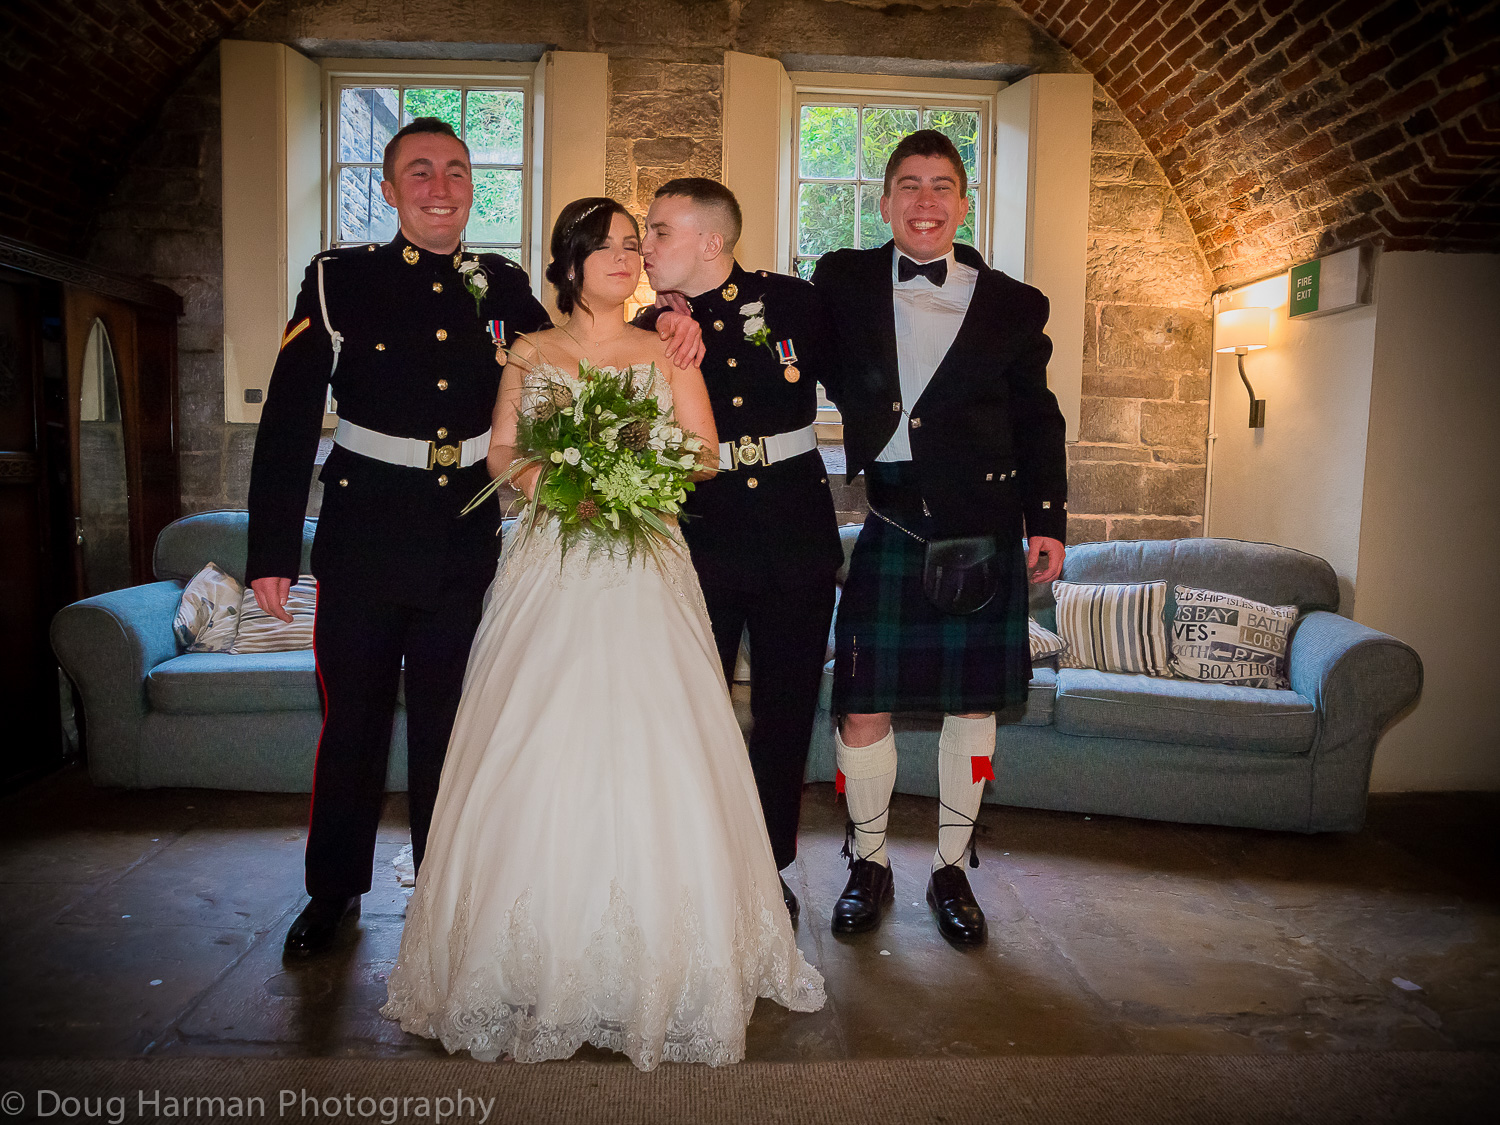 Emma and David interior group photo. A stunning location at Polhawn Fort for Dave and Emma's wedding.